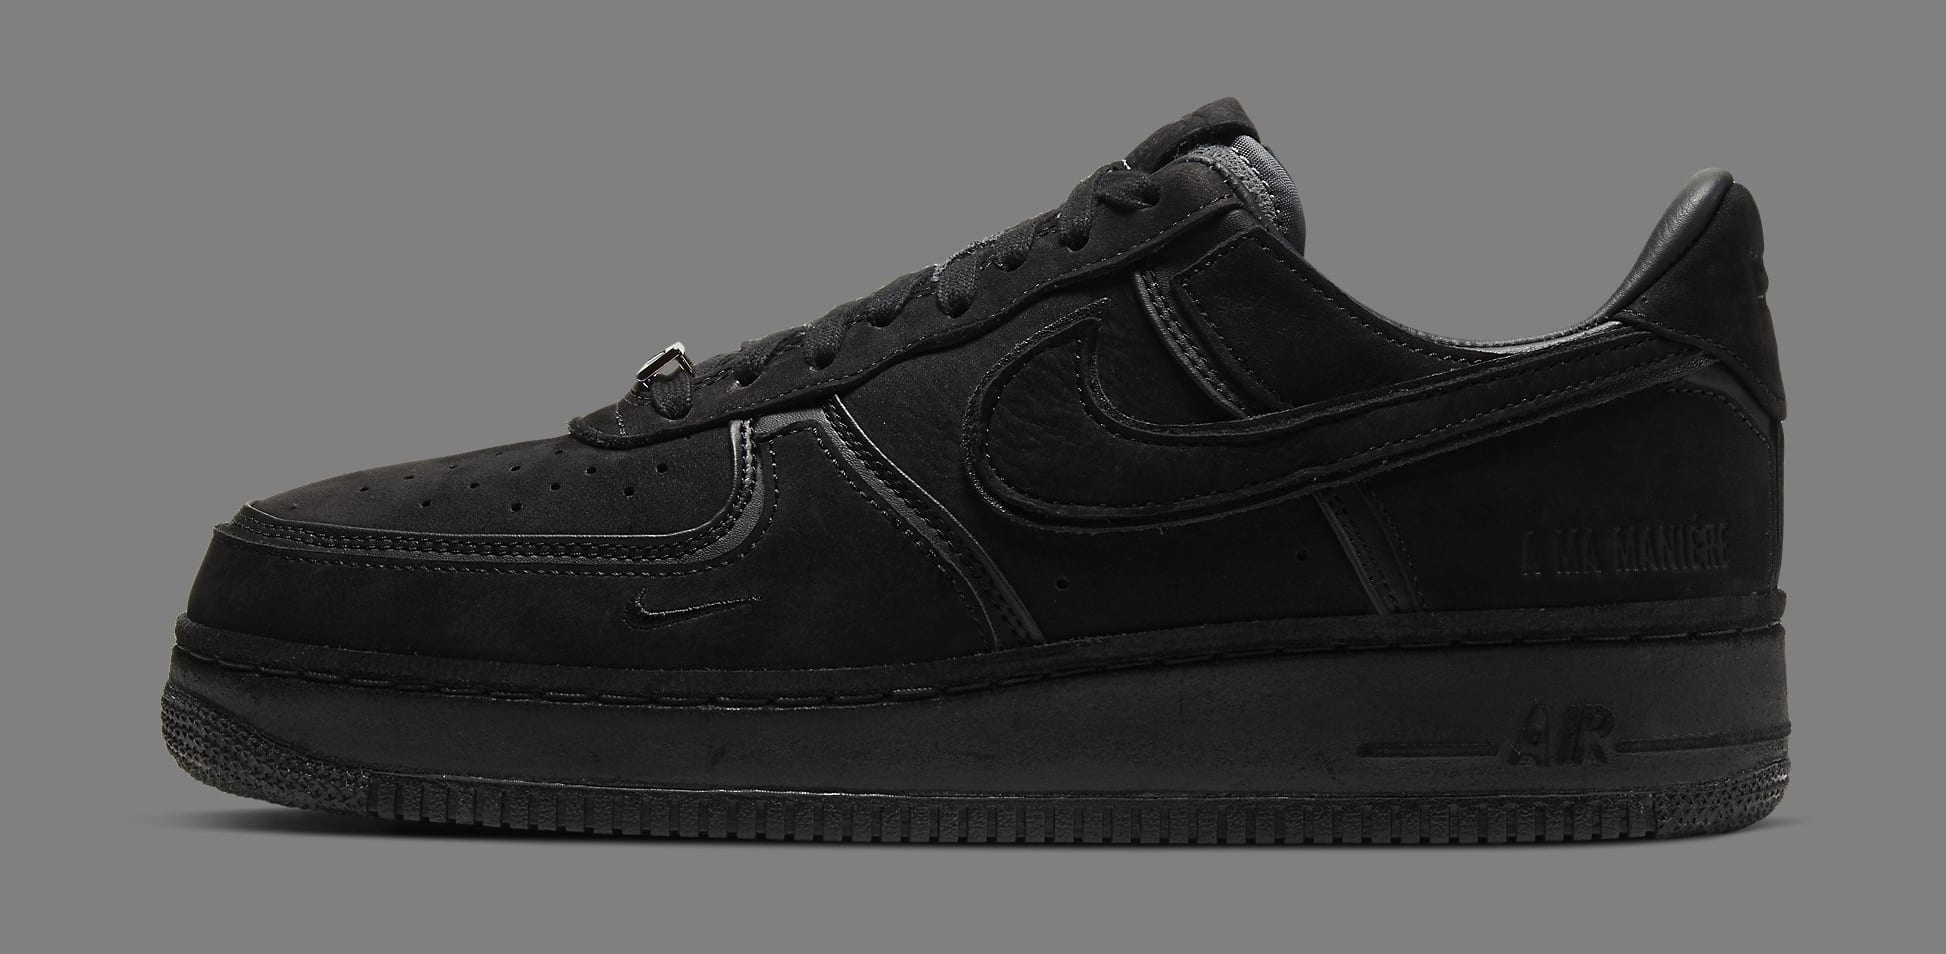 a-ma-maniere-nike-air-force-1-low-hand-wash-cold-cq1087-002-lateral